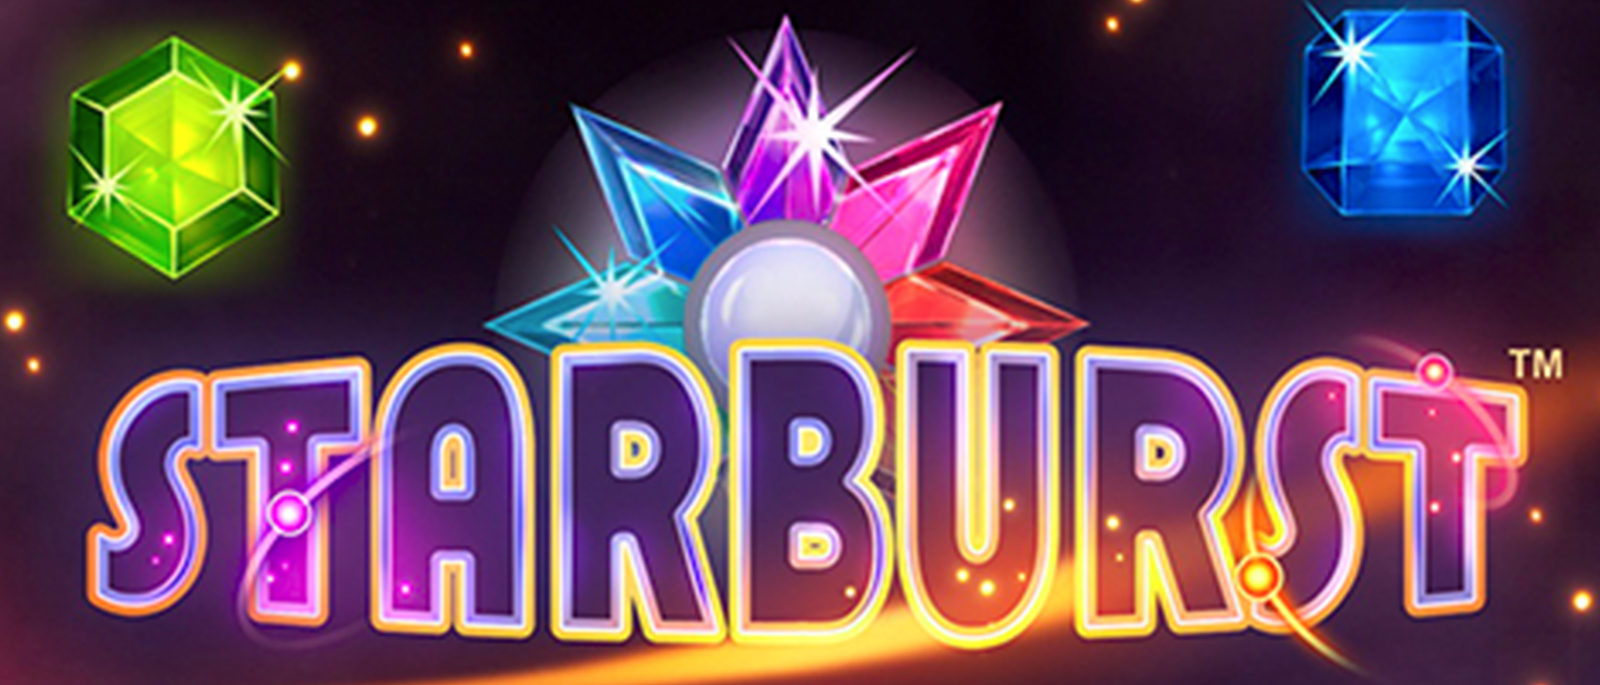 Starburst Slot Machine -616454